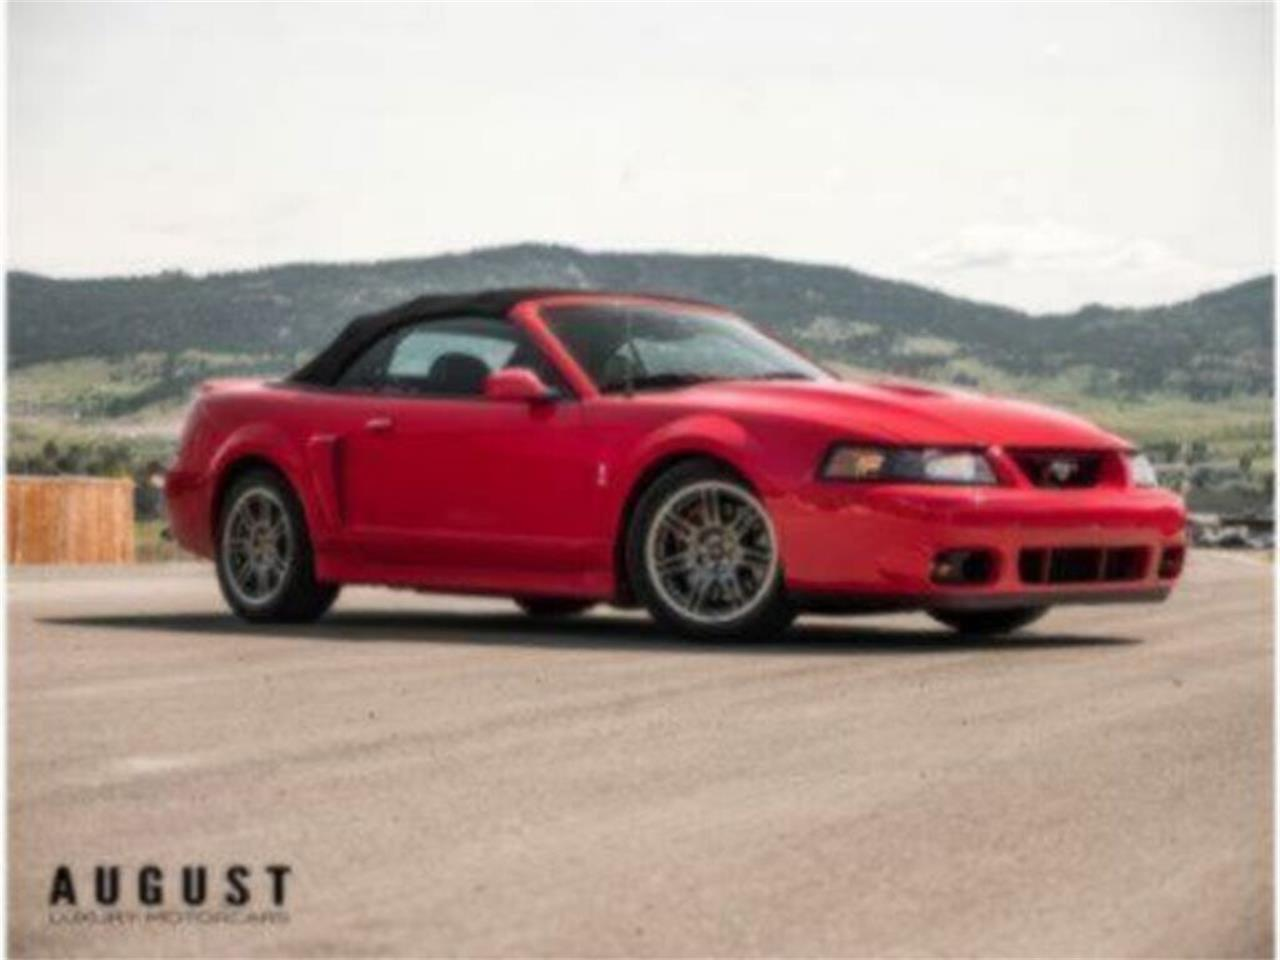 Large Picture of '03 Ford Mustang located in British Columbia - $38,185.00 Offered by August Motorcars - Q9QR